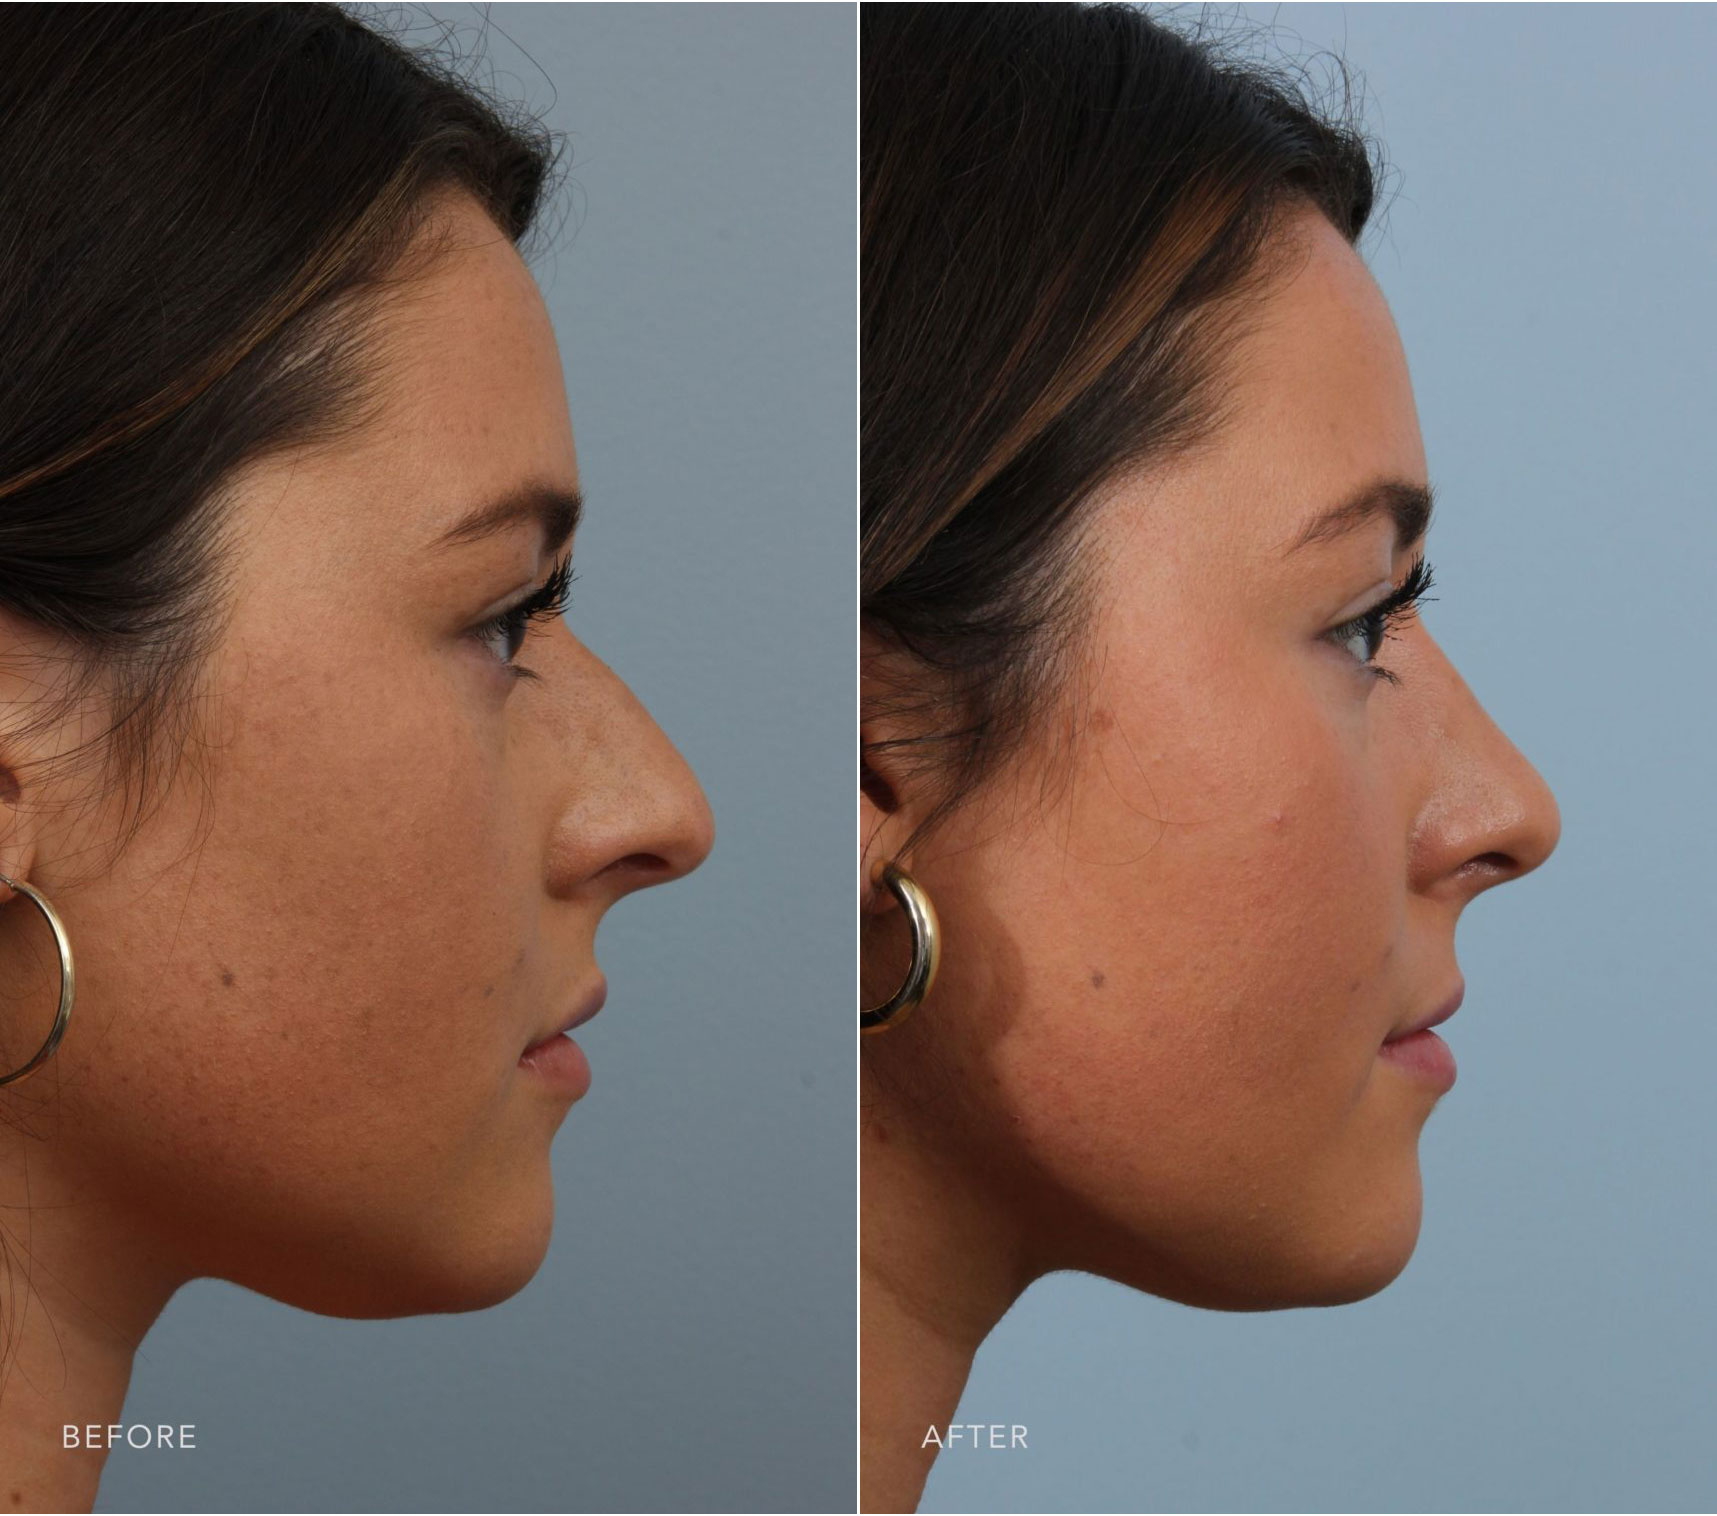 Closeup of a female patient before and after undergoing closed rhinoplasty plastic surgery